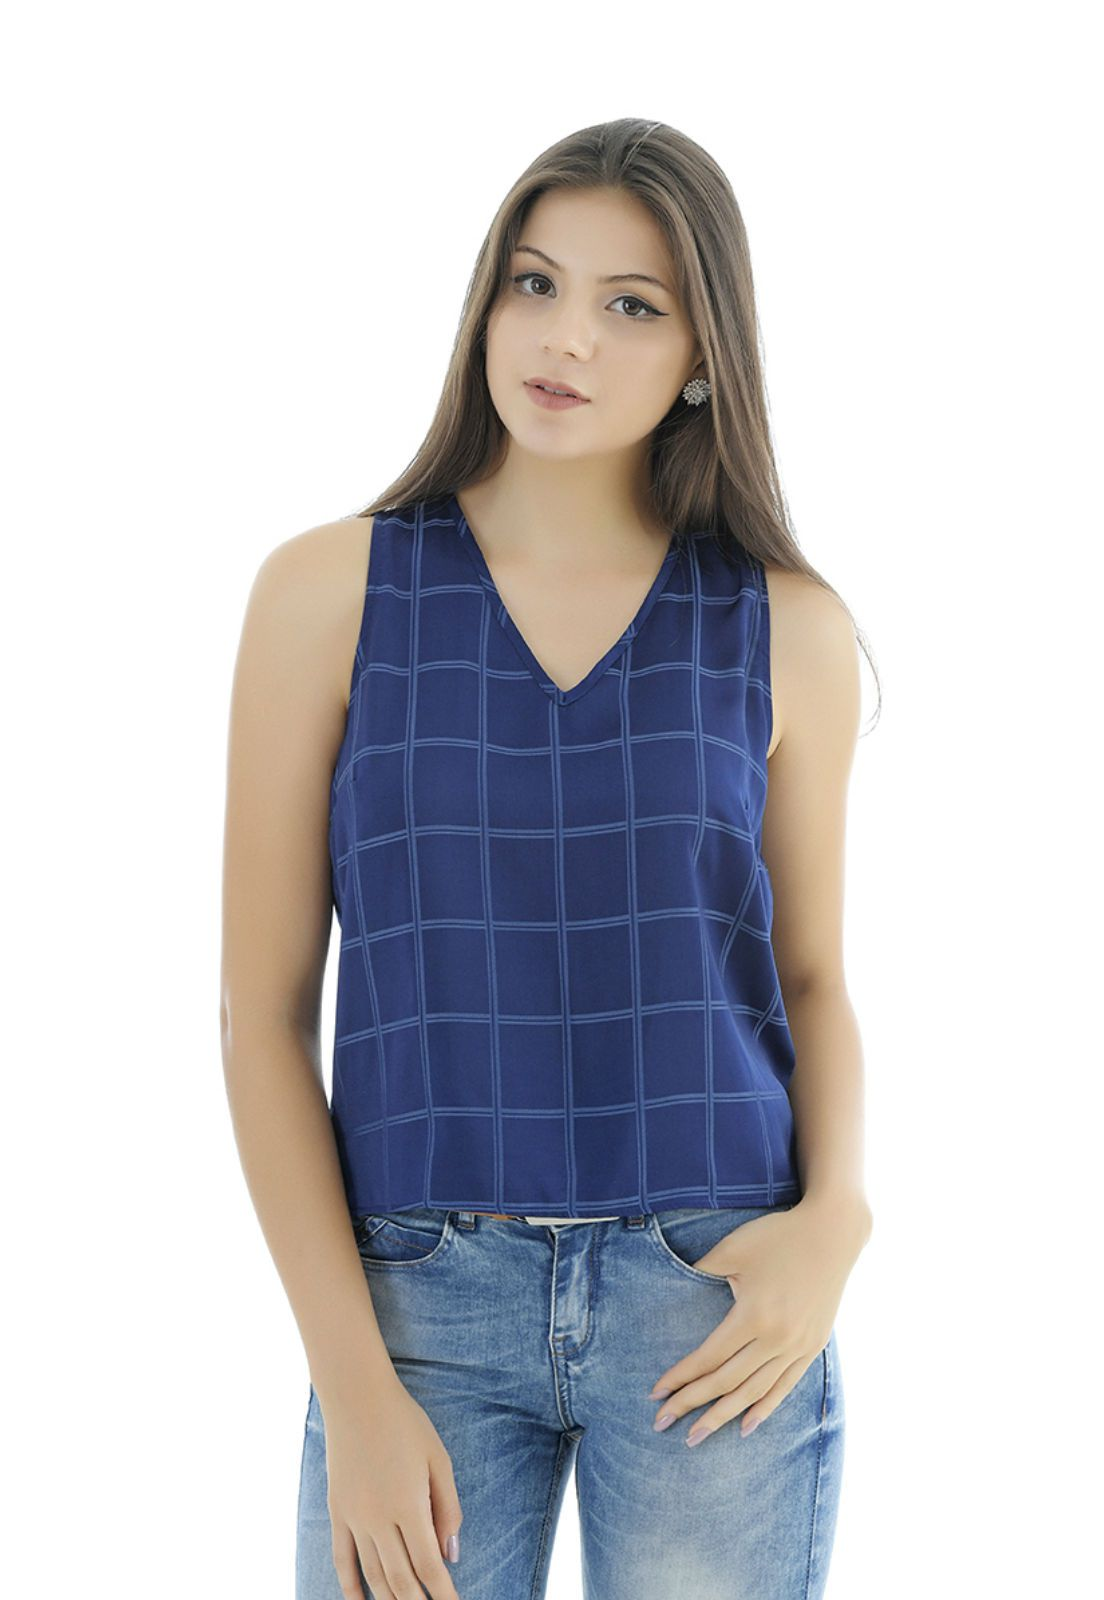 Blusa Unique Chic regata